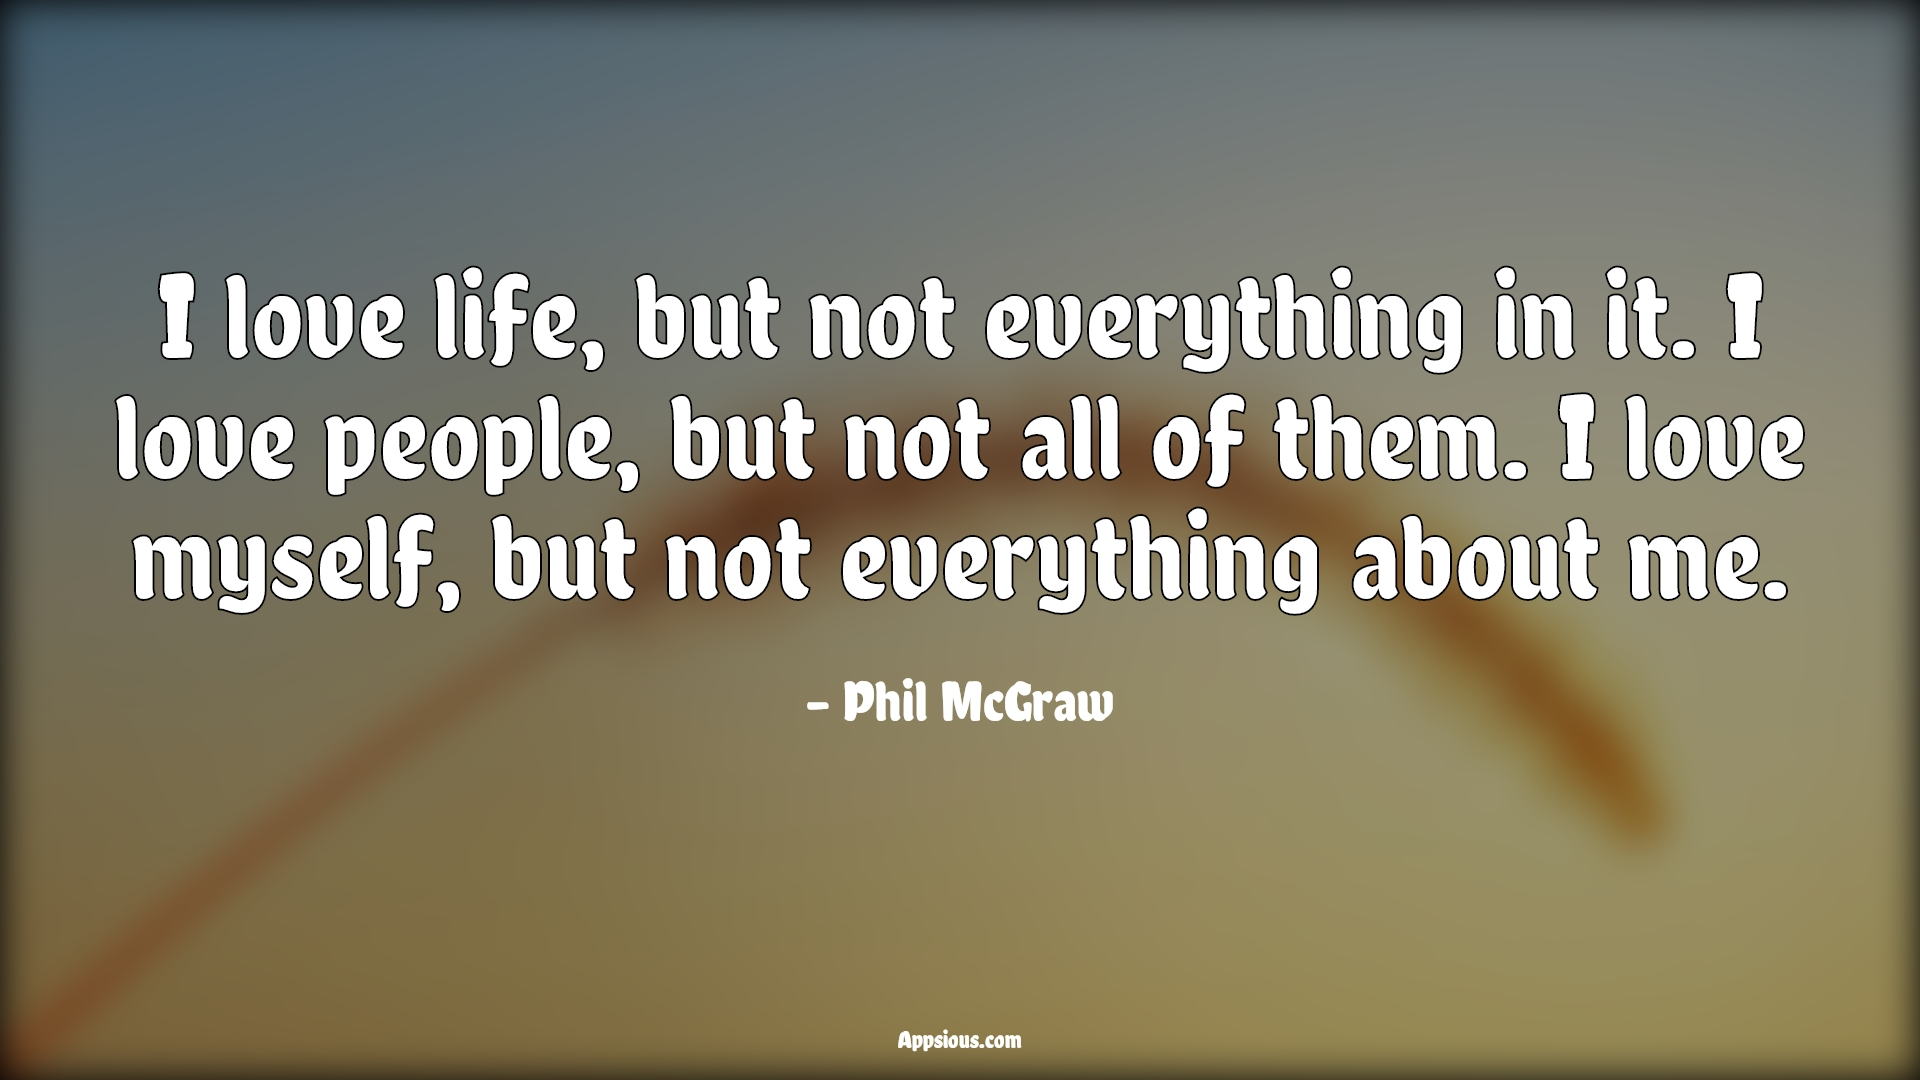 I love life, but not everything in it. I love people, but not all of them. I love myself, but not everything about me.